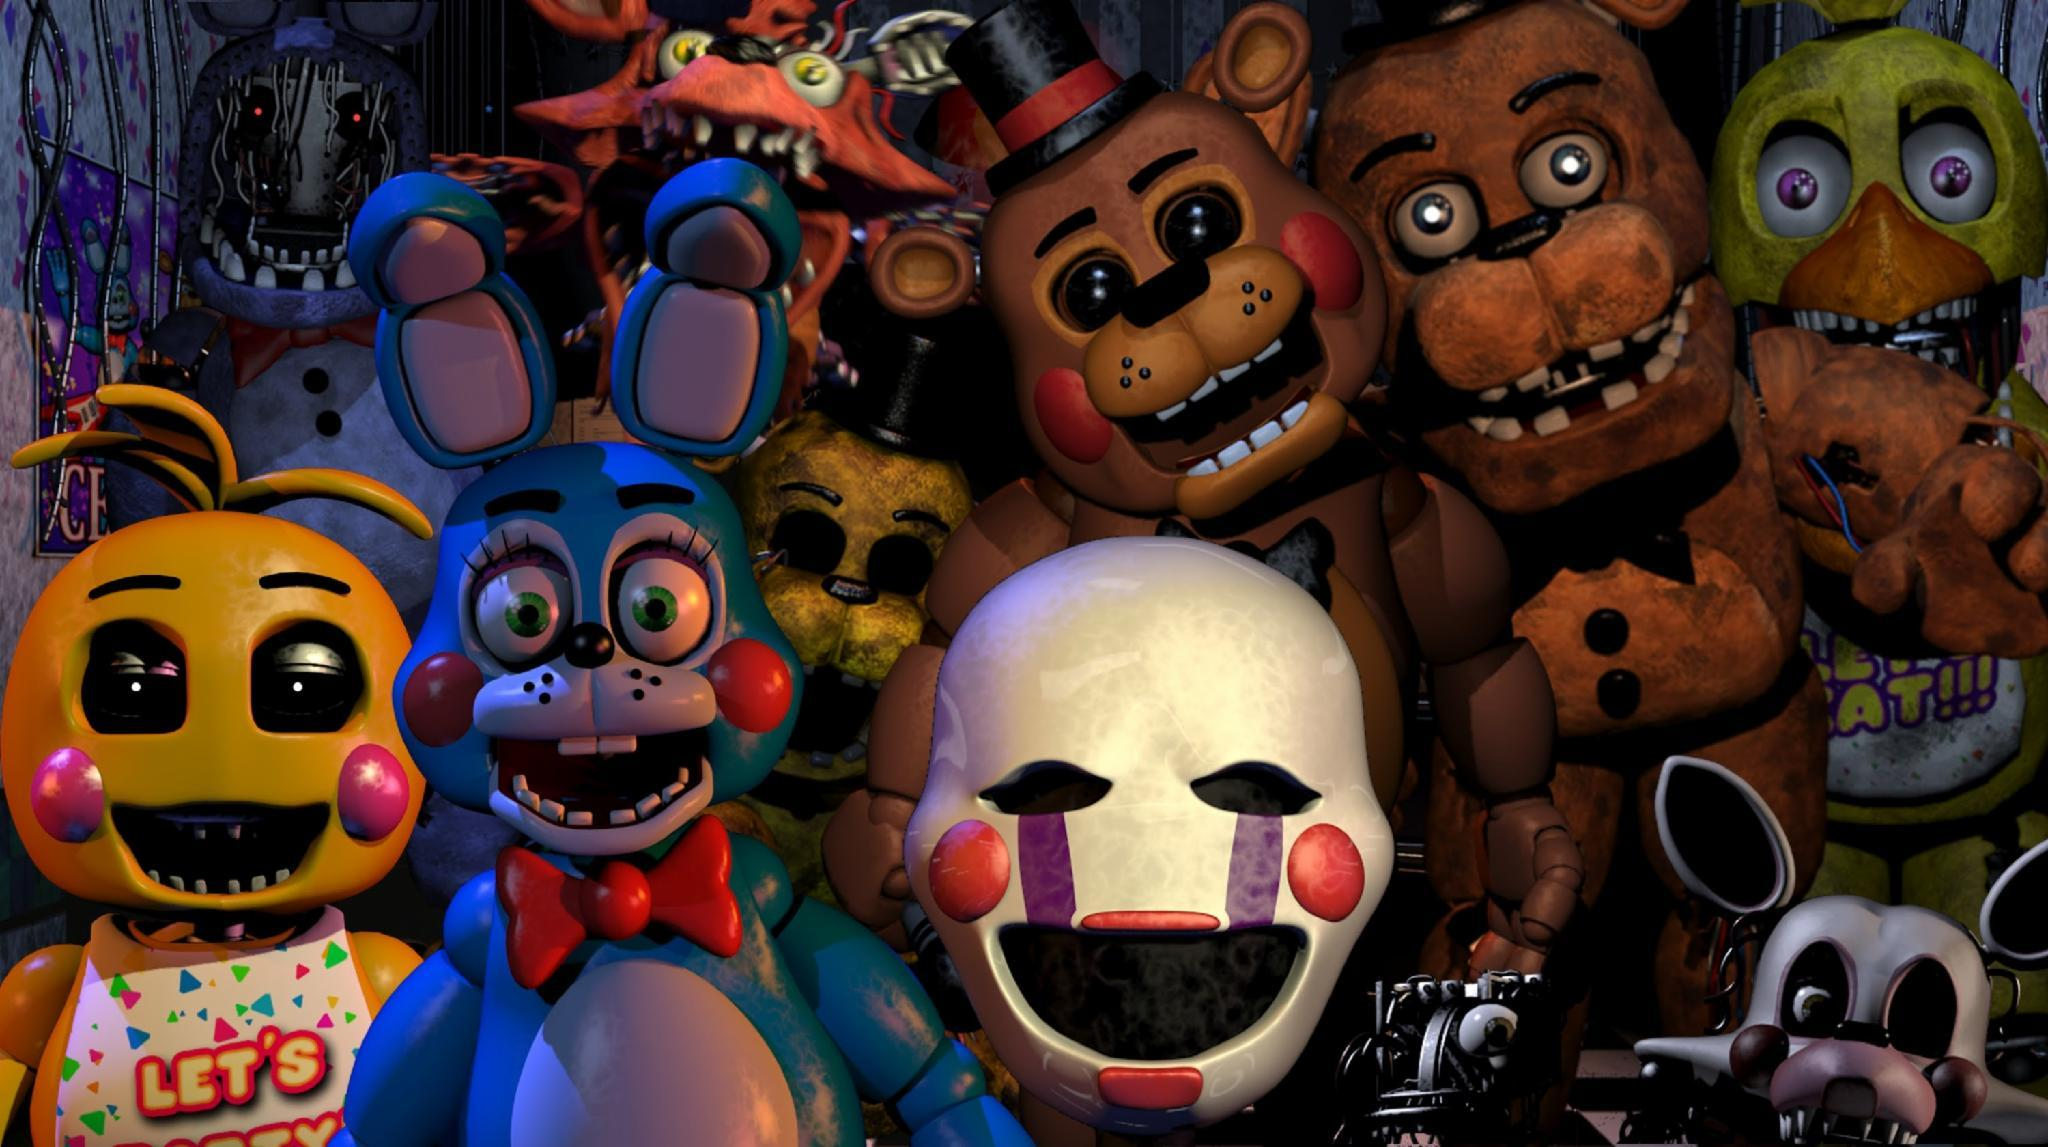 Which Five Nights at Freddy's animatronic are you?